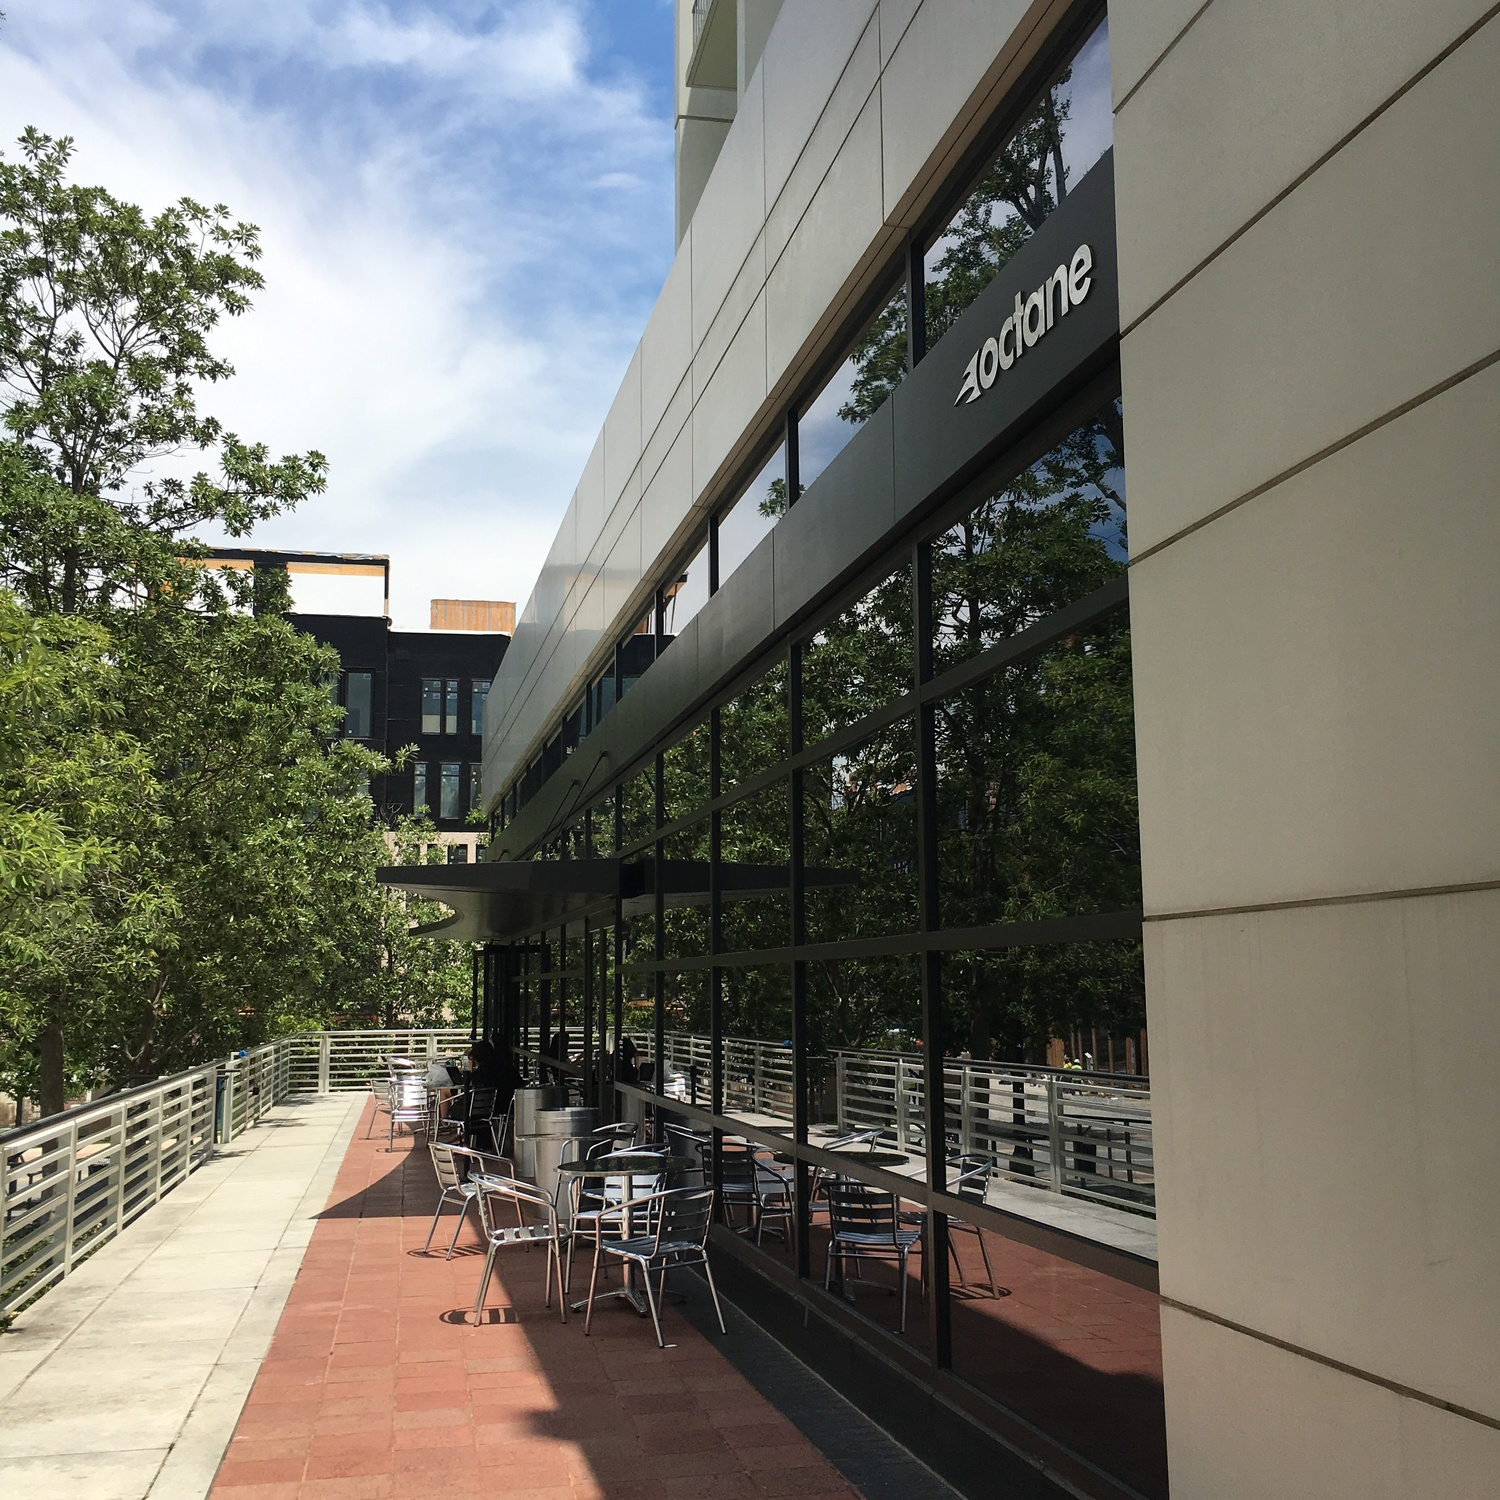 The outdoor patio at Octane Coffee at Woodruff Arts Center.